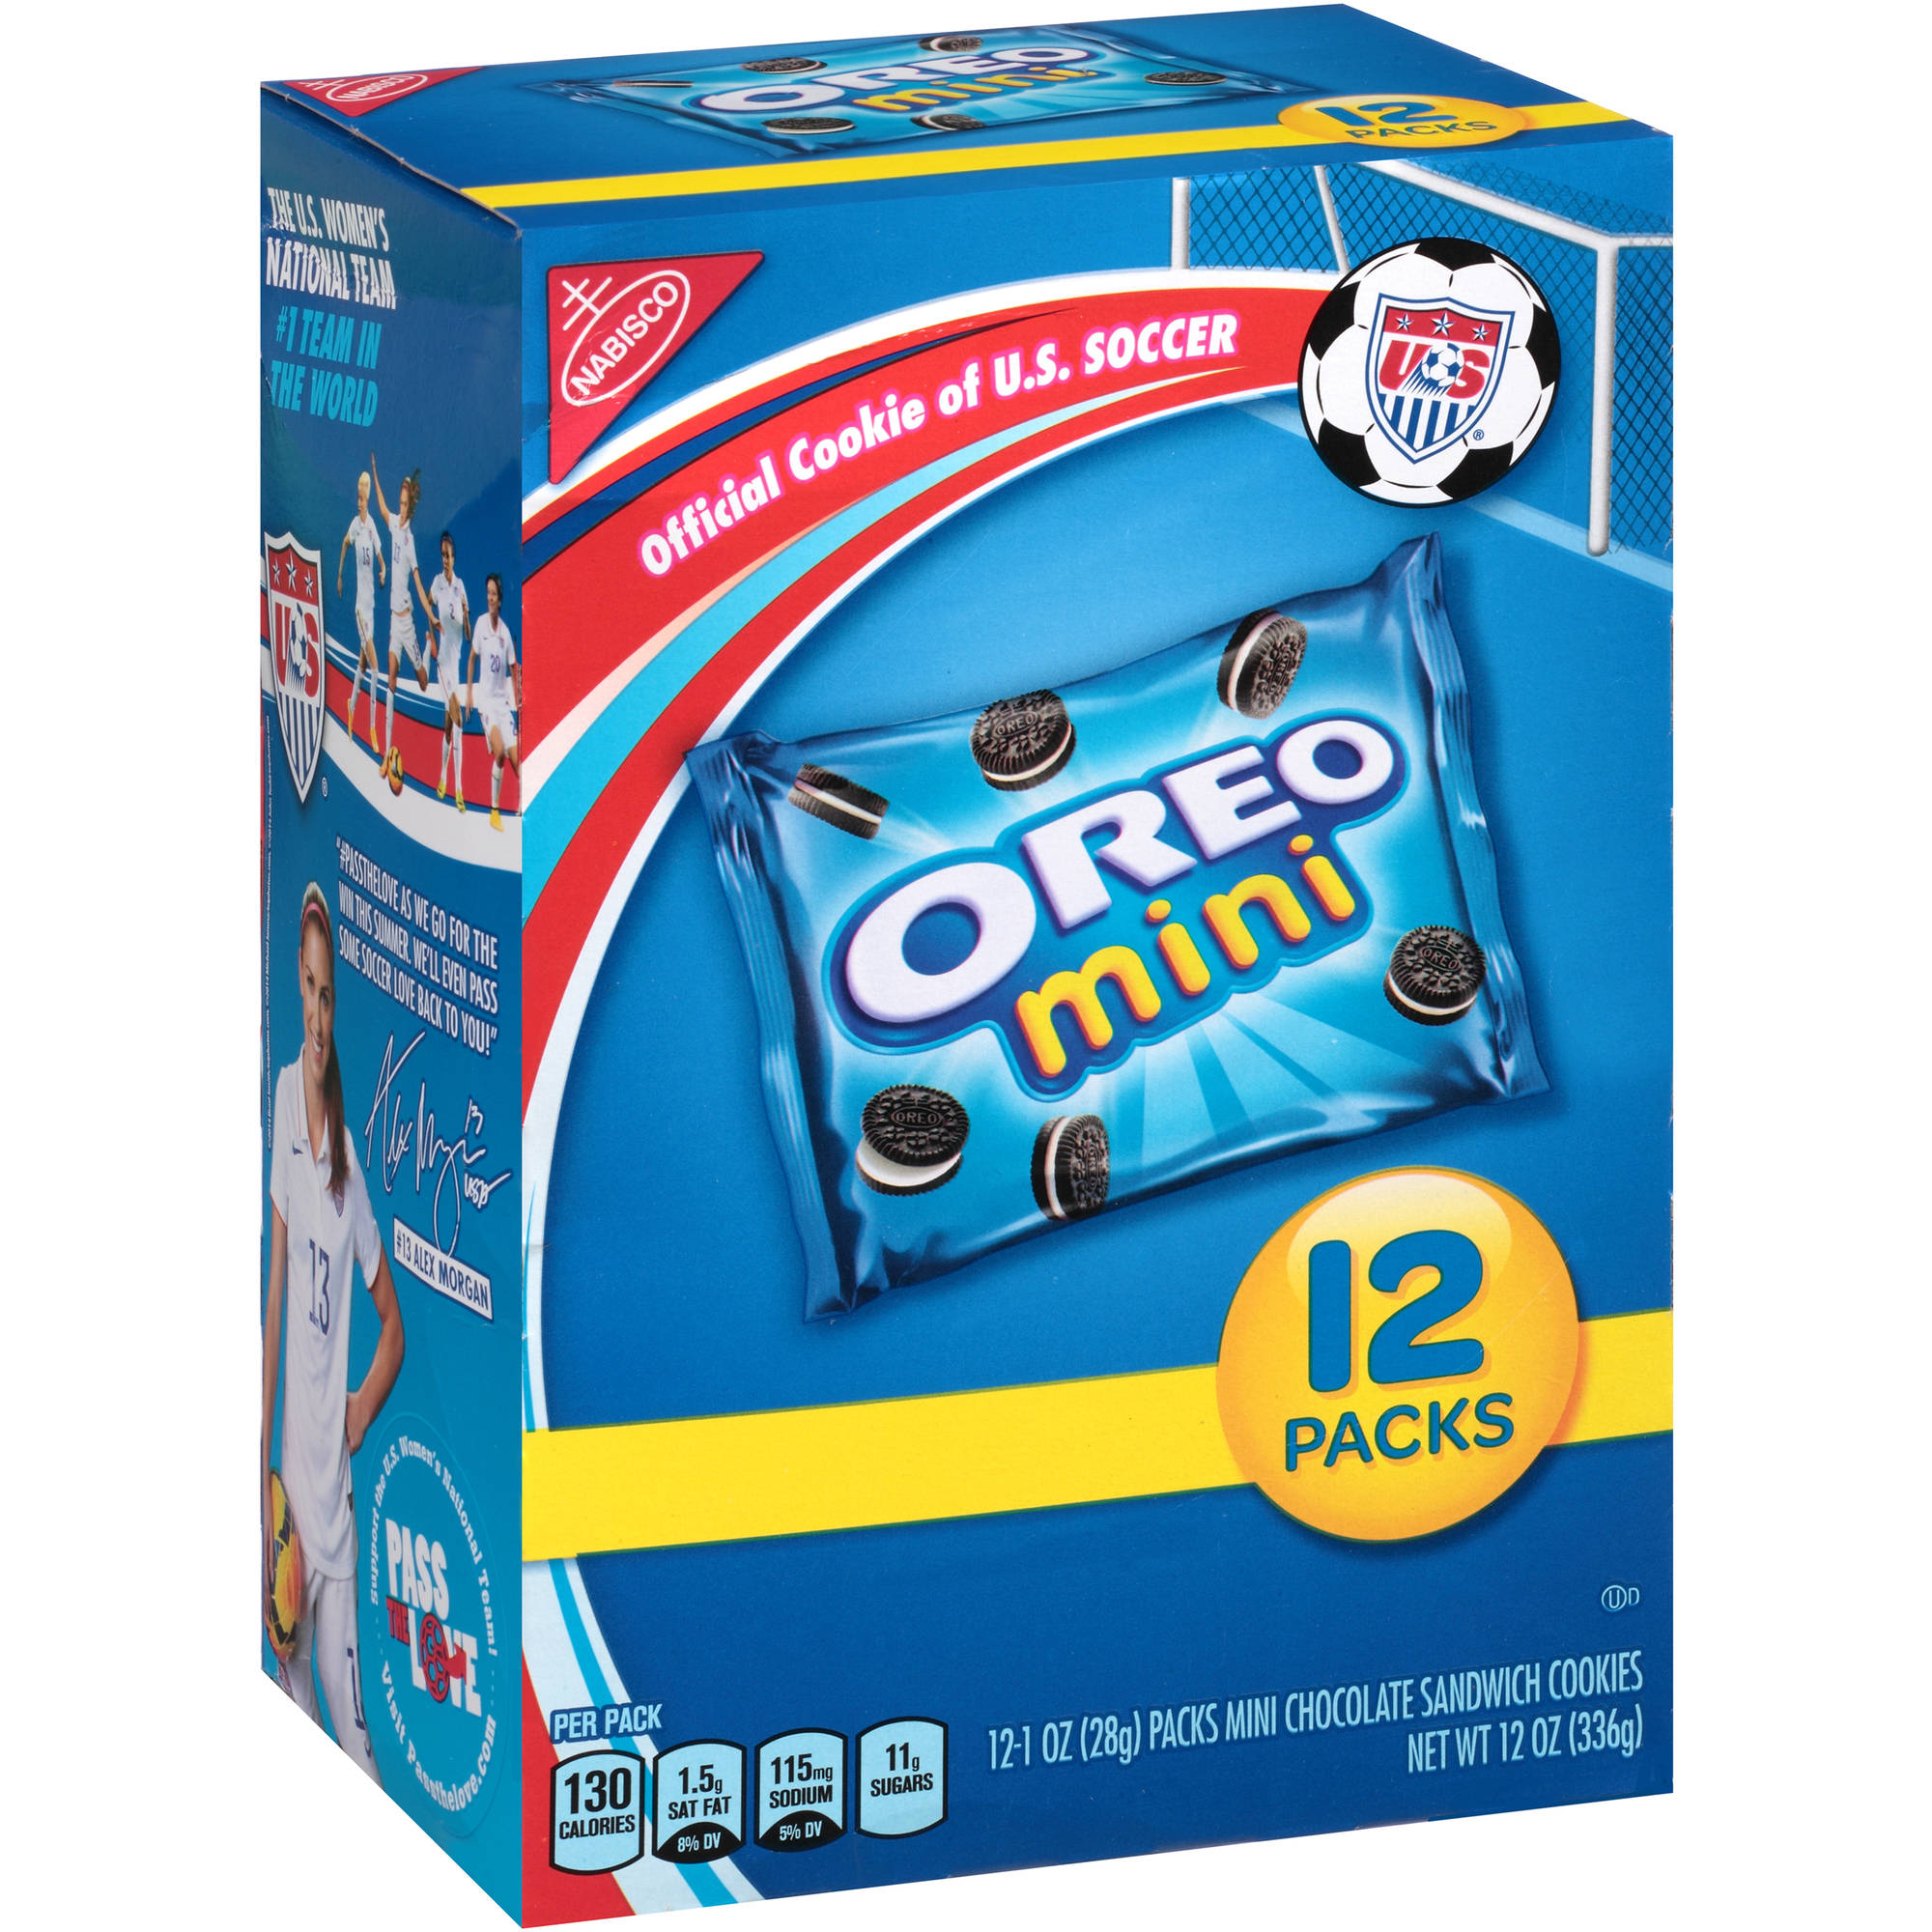 Nabisco Oreo Mini Chocolate Sandwich Cookies, 1 oz, 12 count